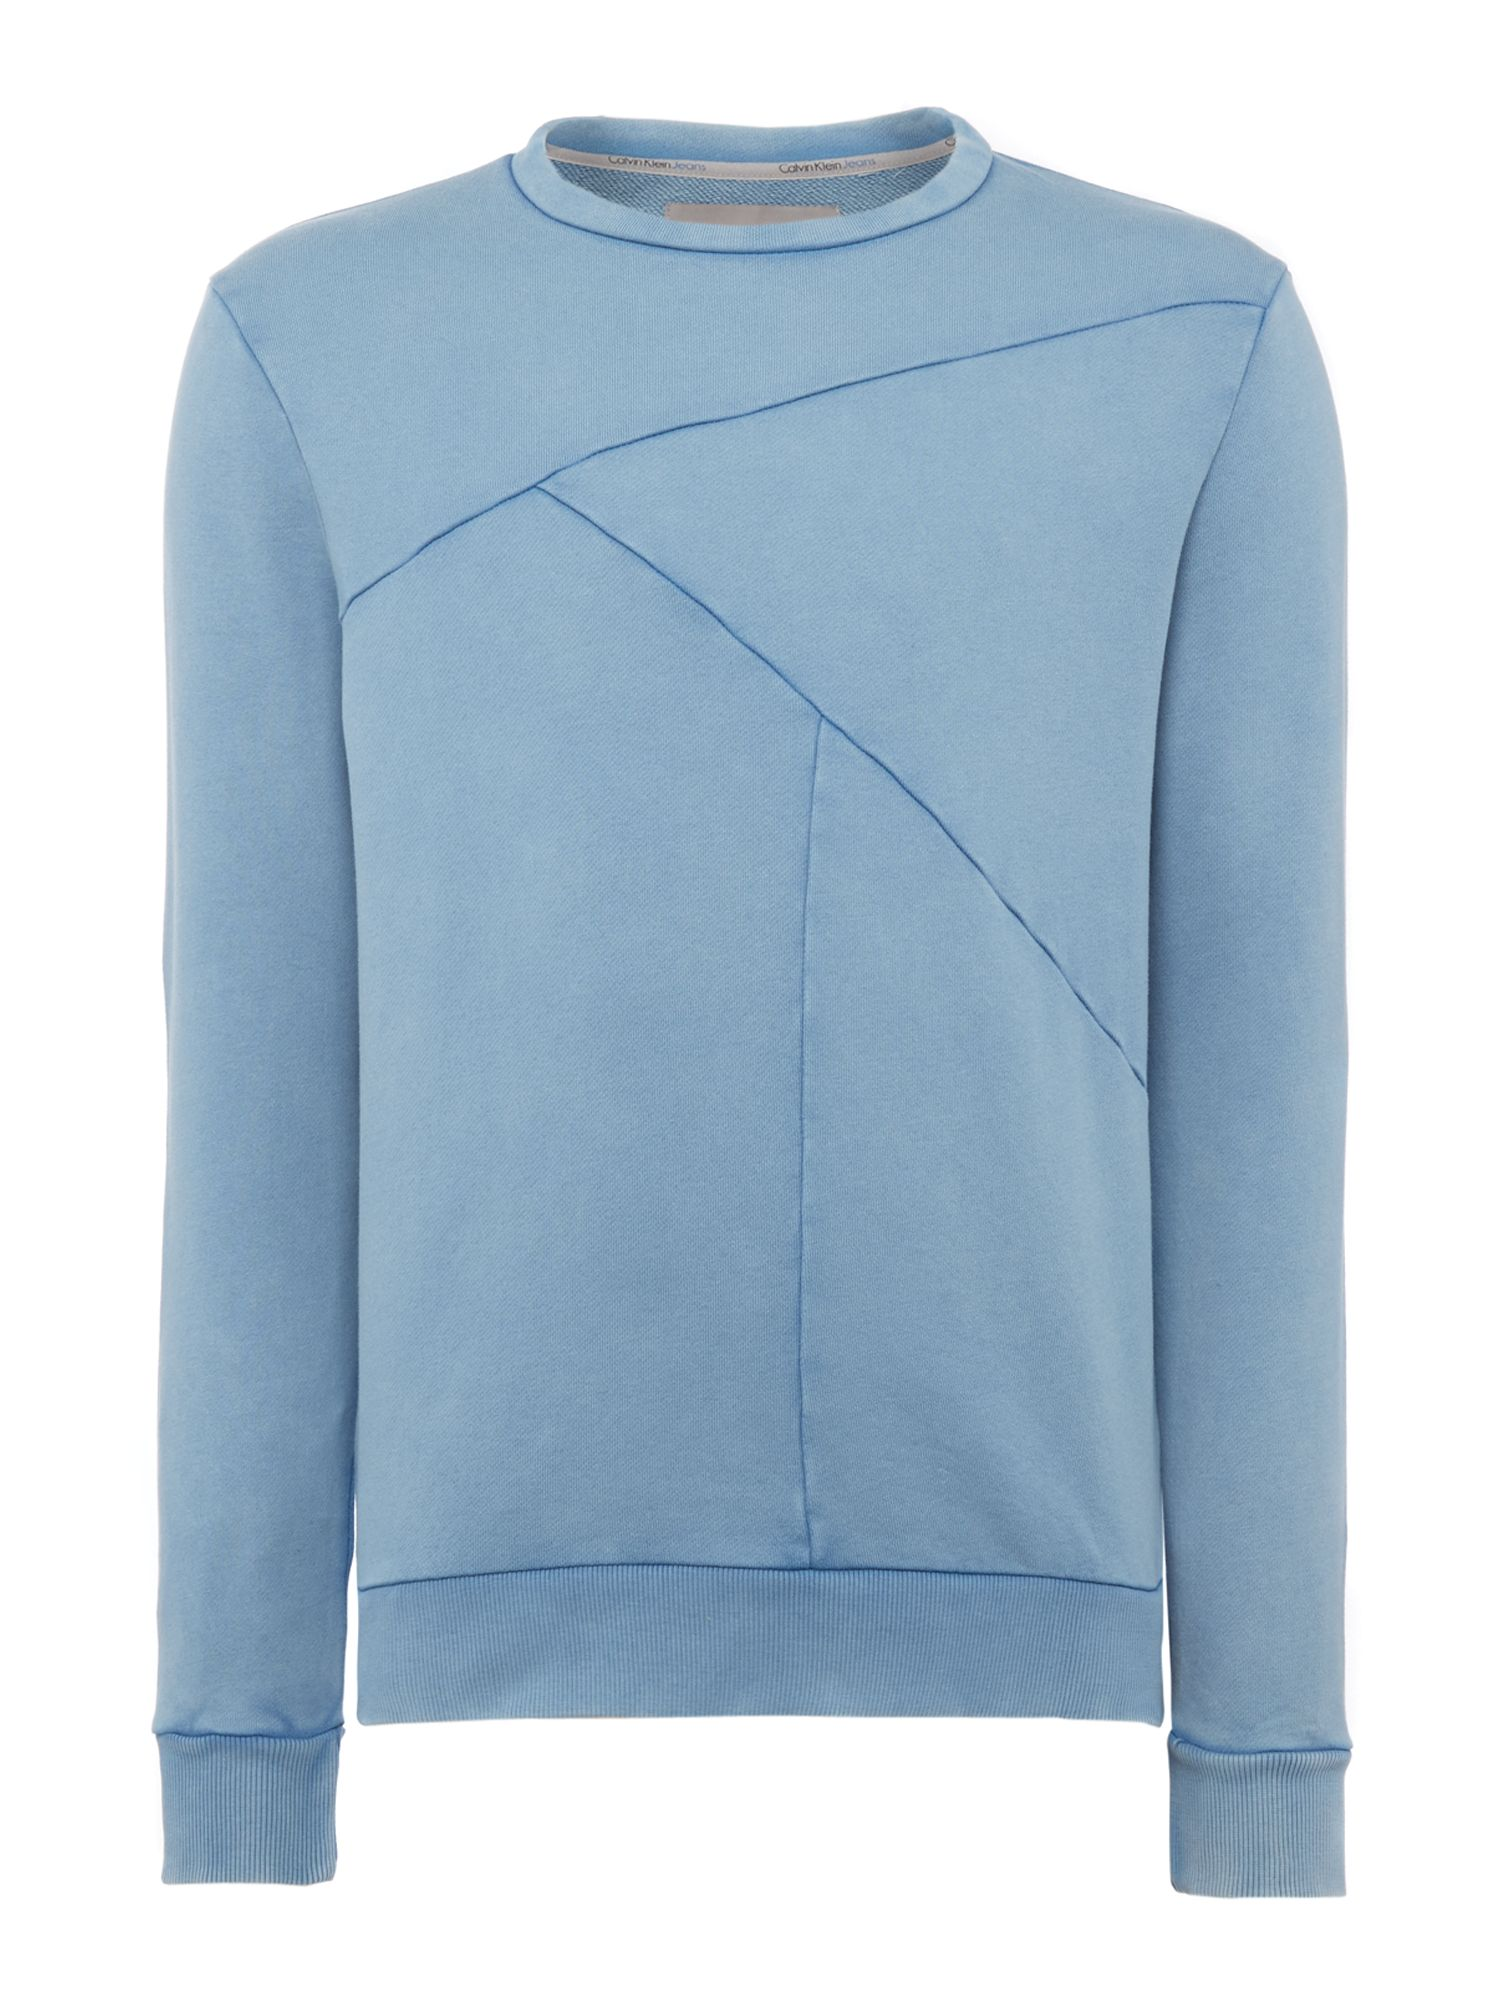 Men's Calvin Klein Horto Sweatshirt, Light Blue